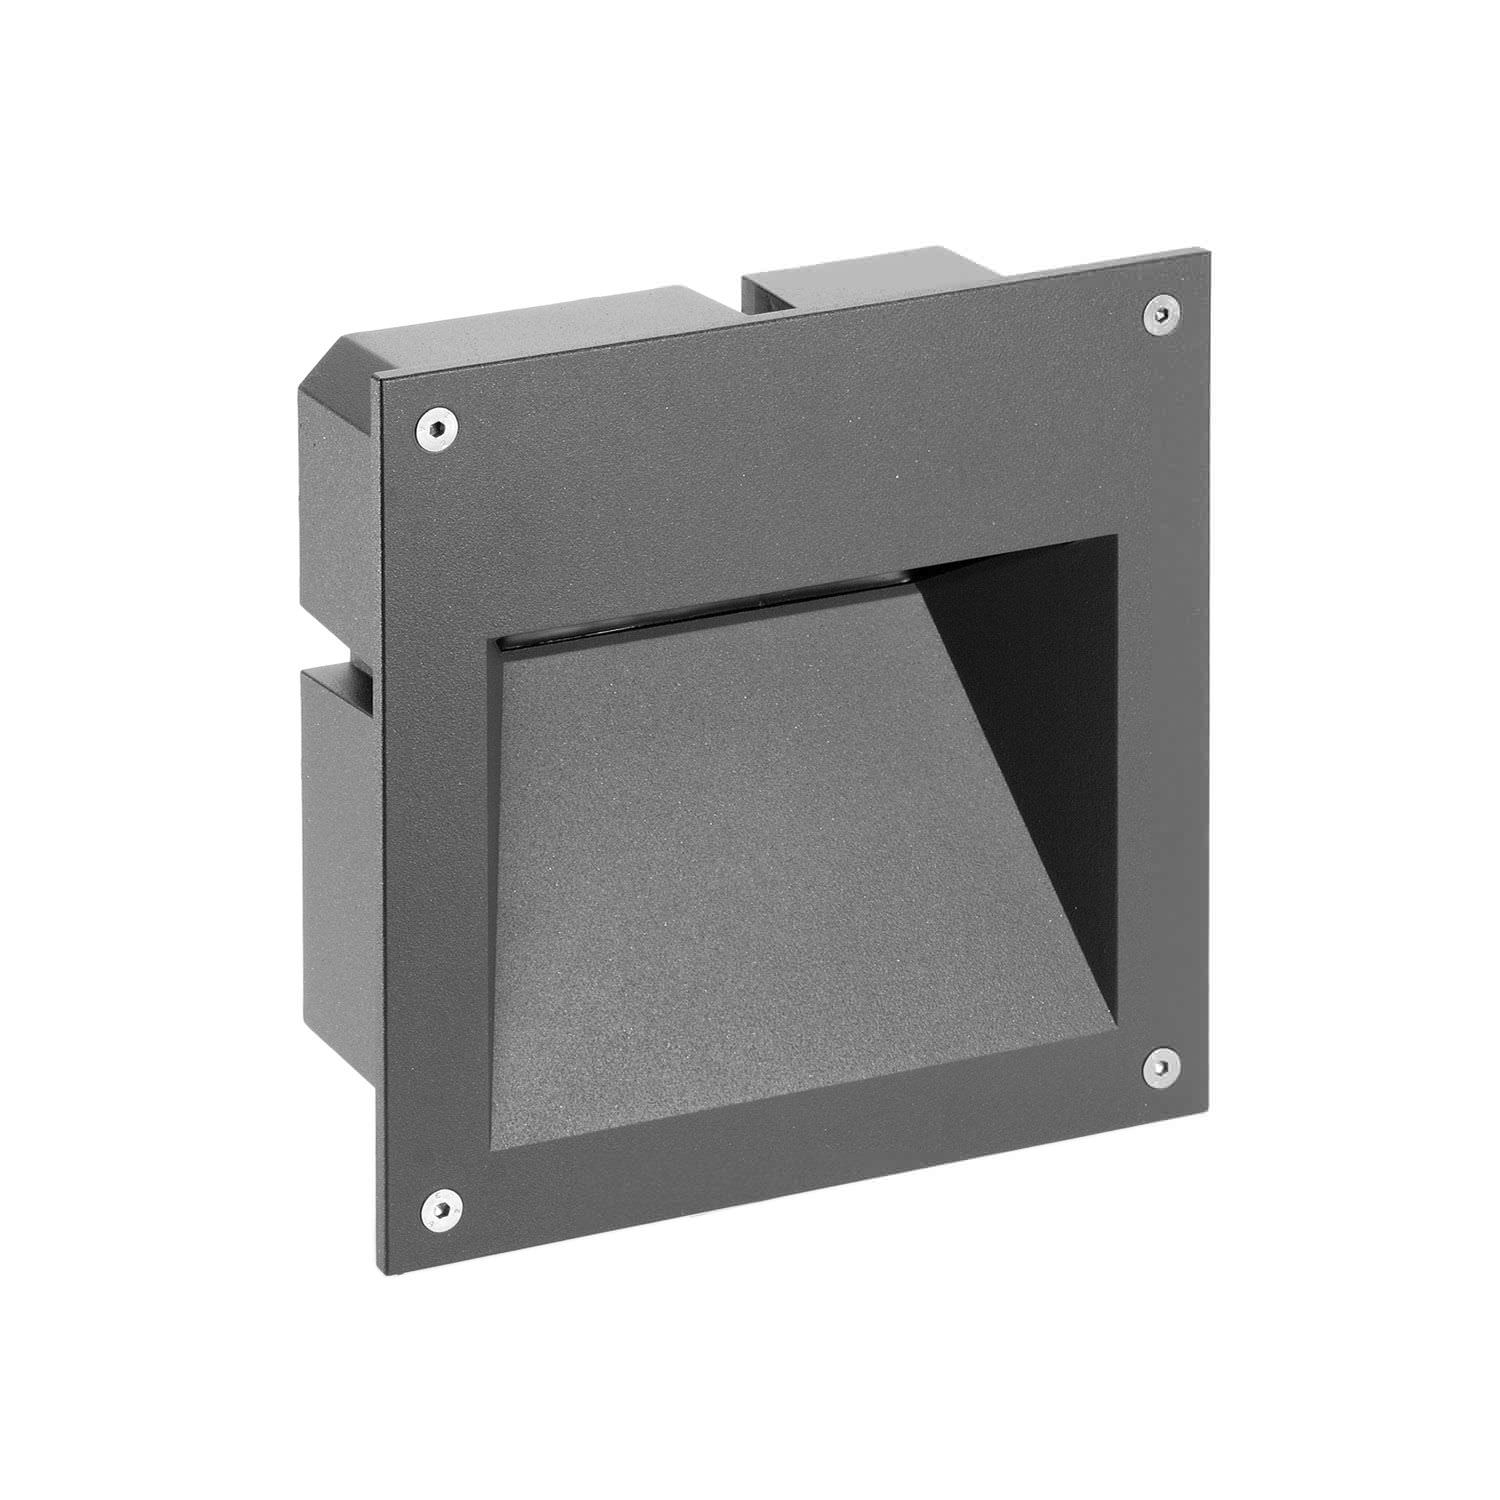 10 reasons to install recessed outdoor wall lights for Fixture exterieur led